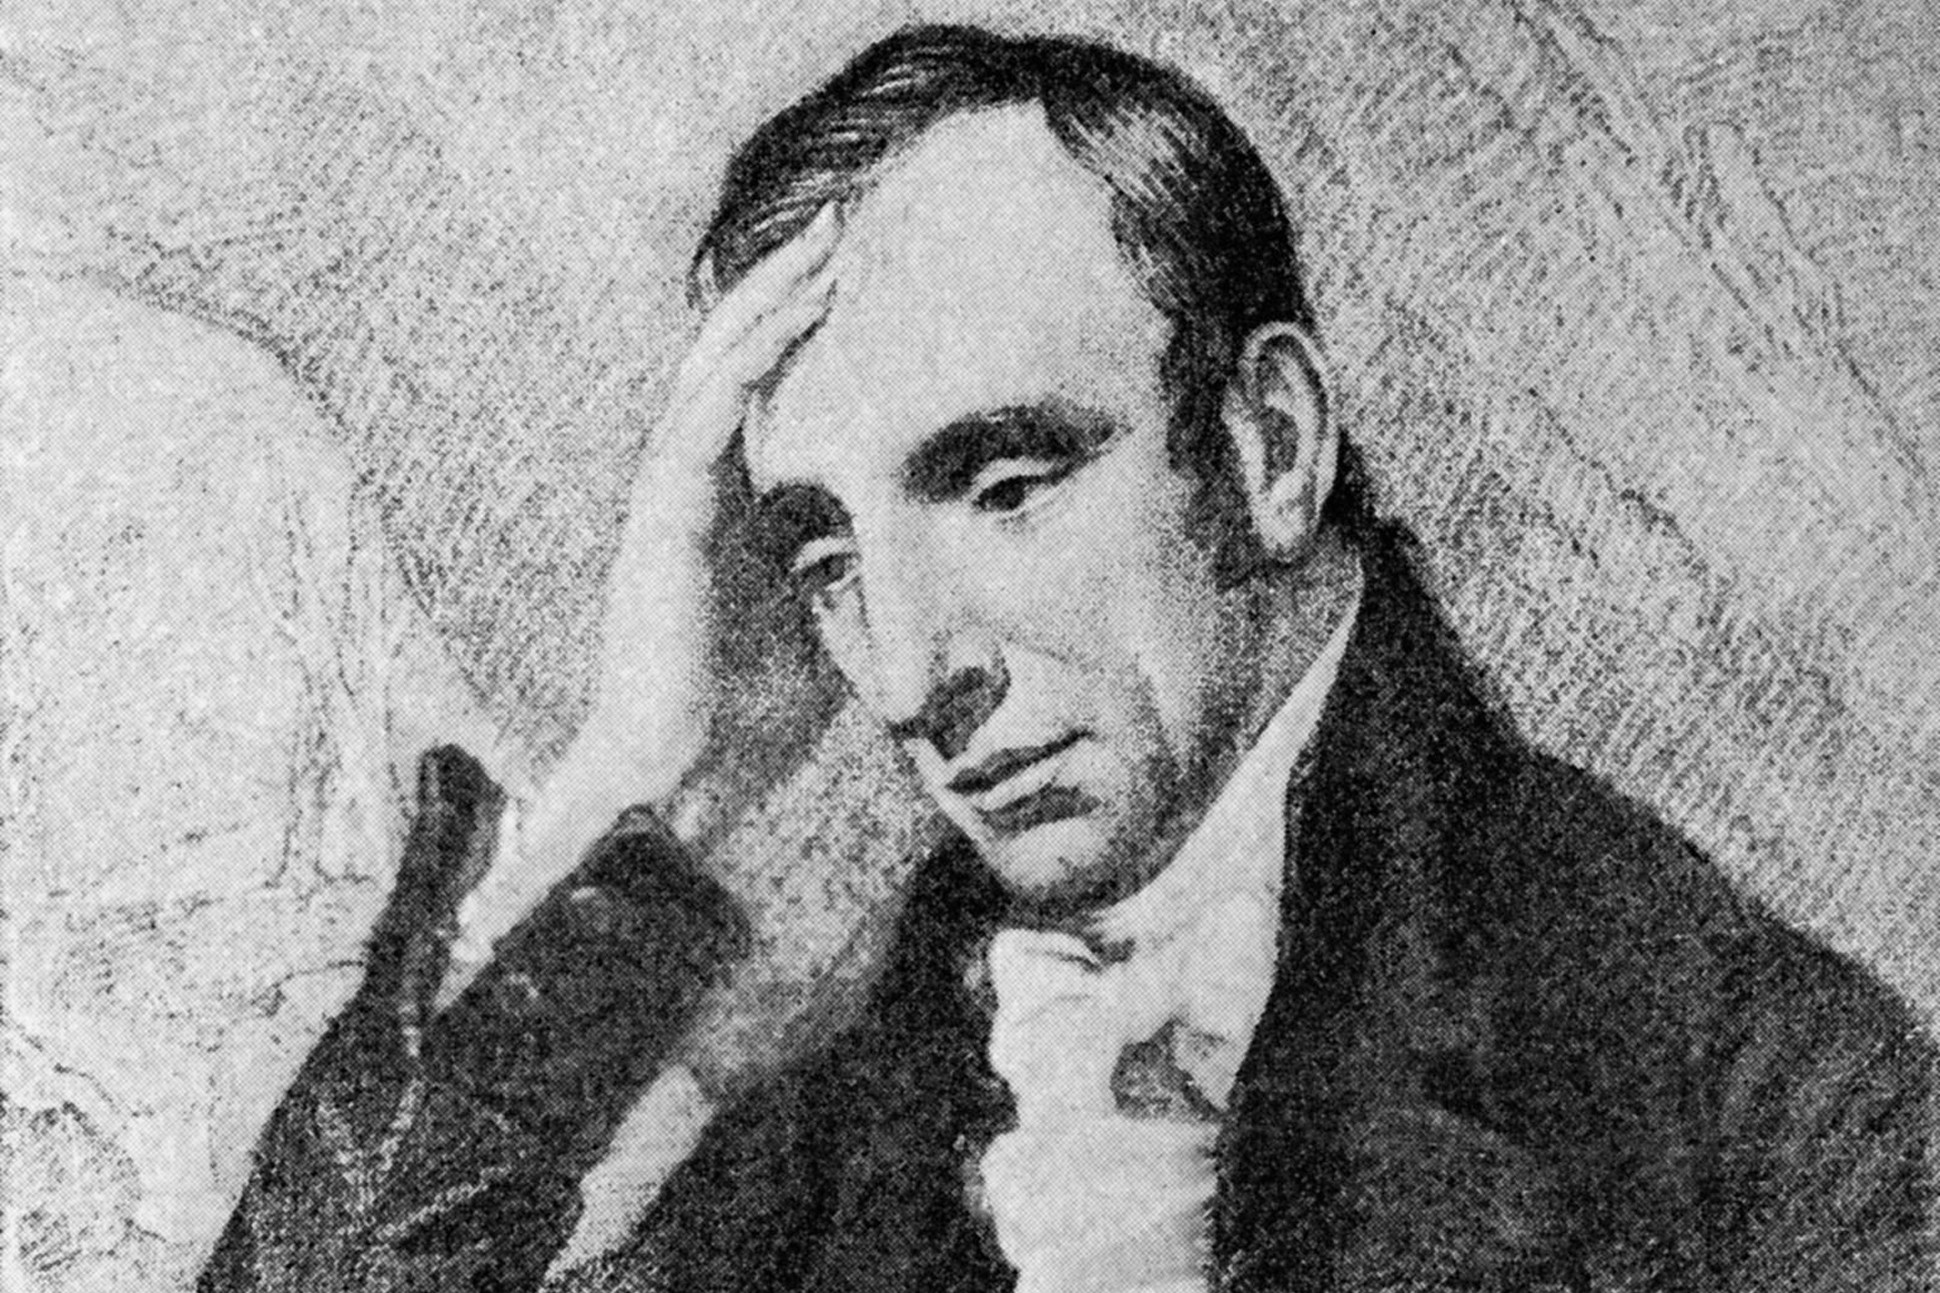 biography william wordsworth Wordsworth once desribed his poet's soul as a rock with torrents roaring, with  the clouds familiar, and a favourite of the stars to share, however imperfectly,.